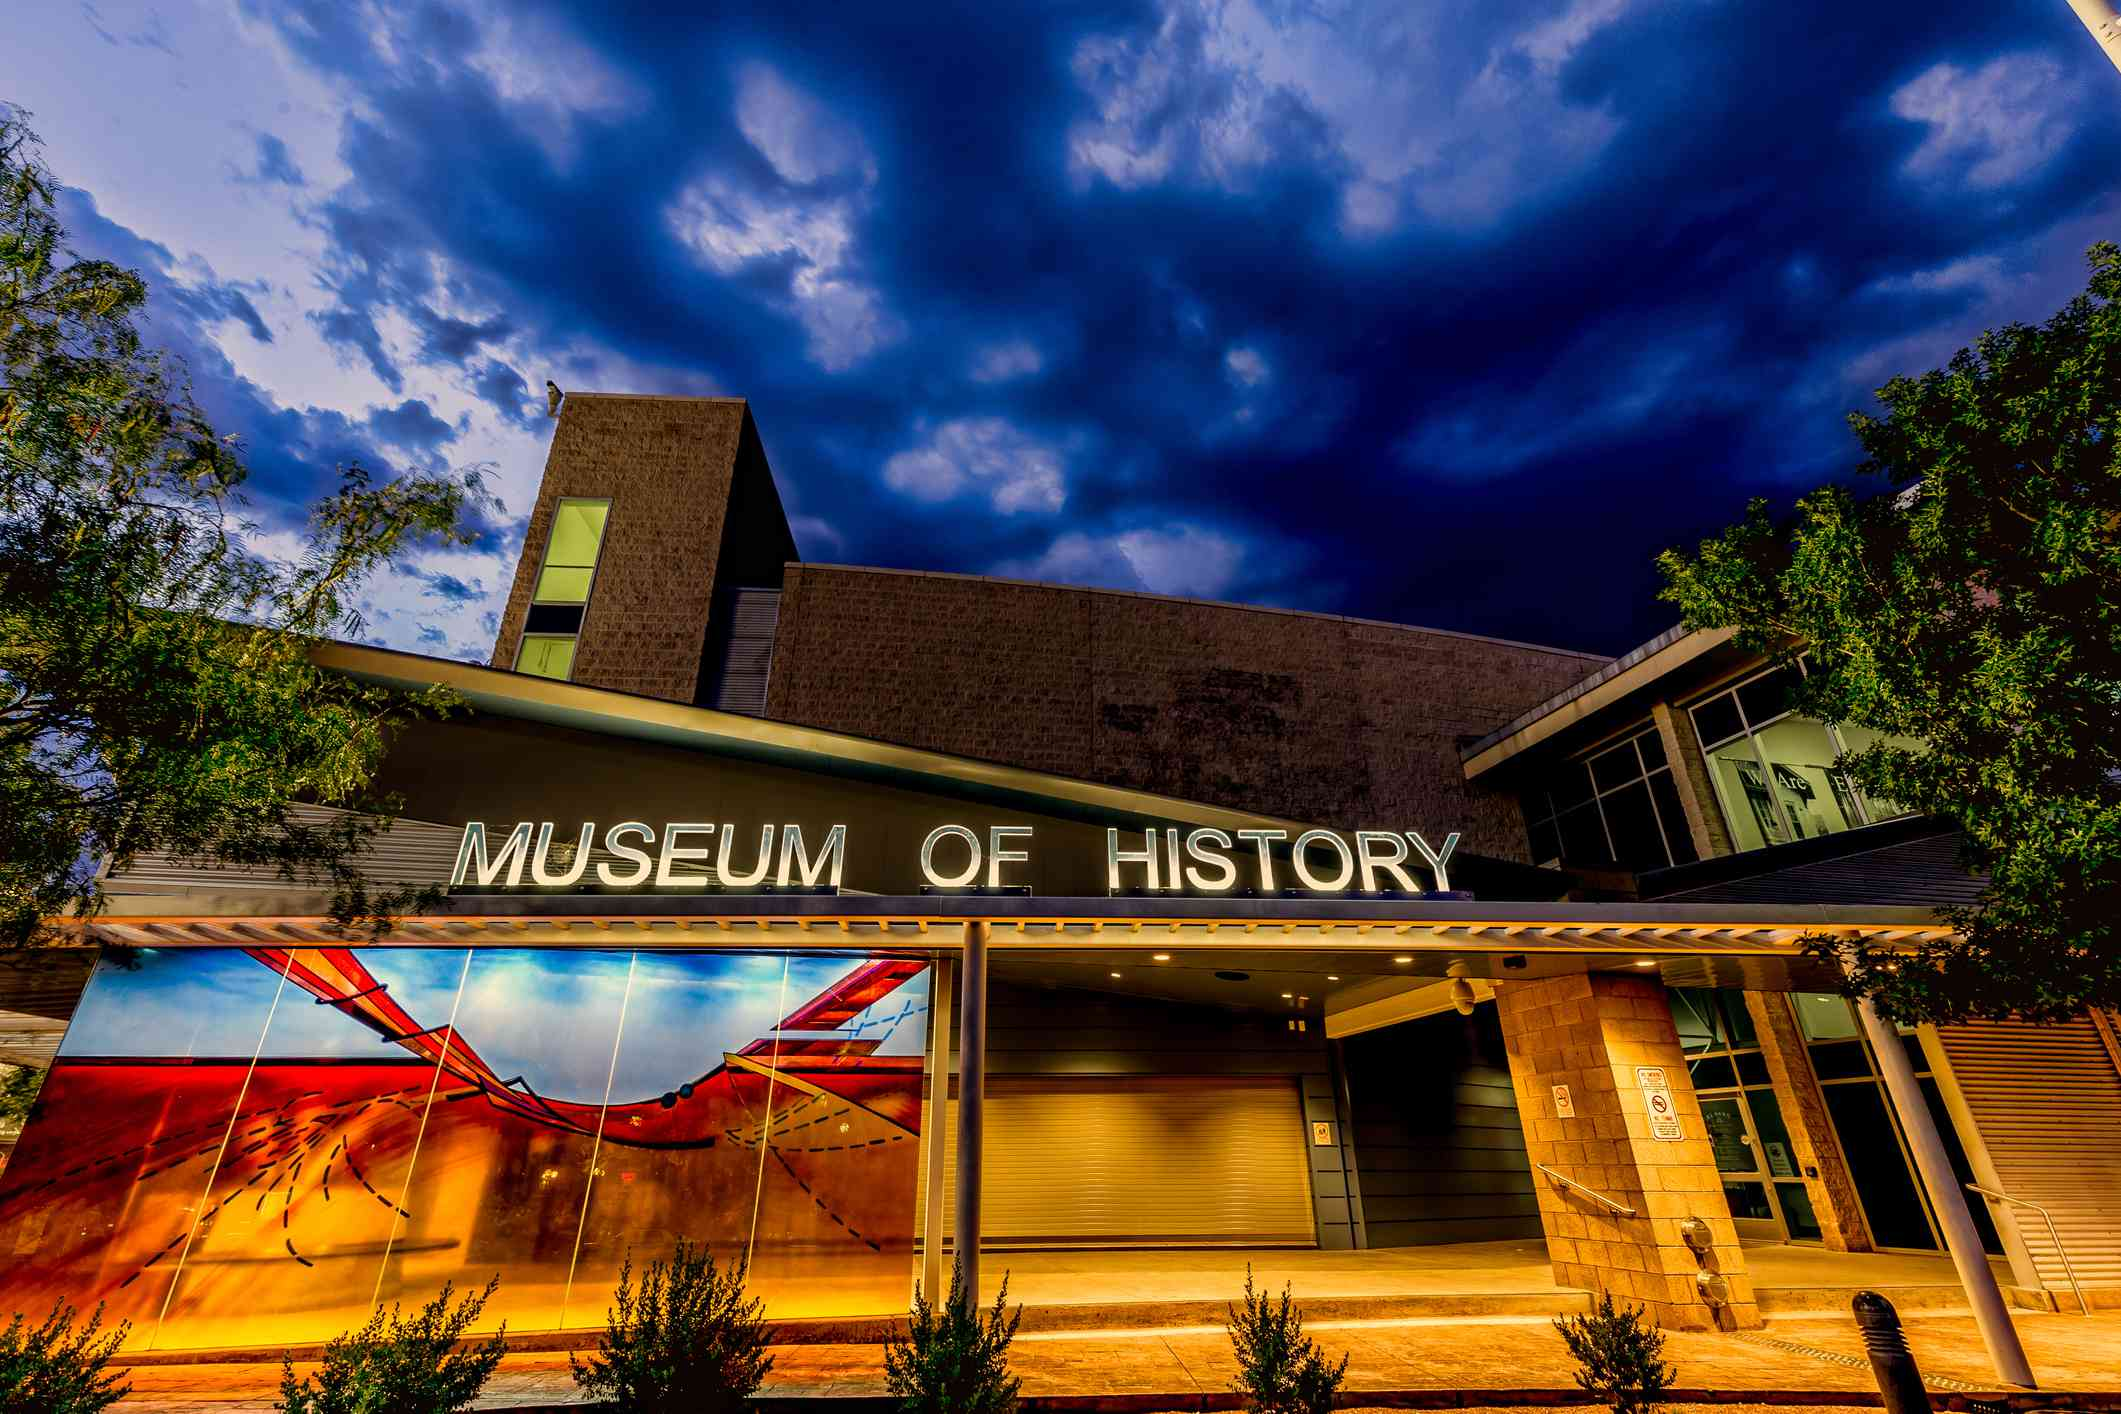 Storm clouds appear behind the El Paso Museum of History